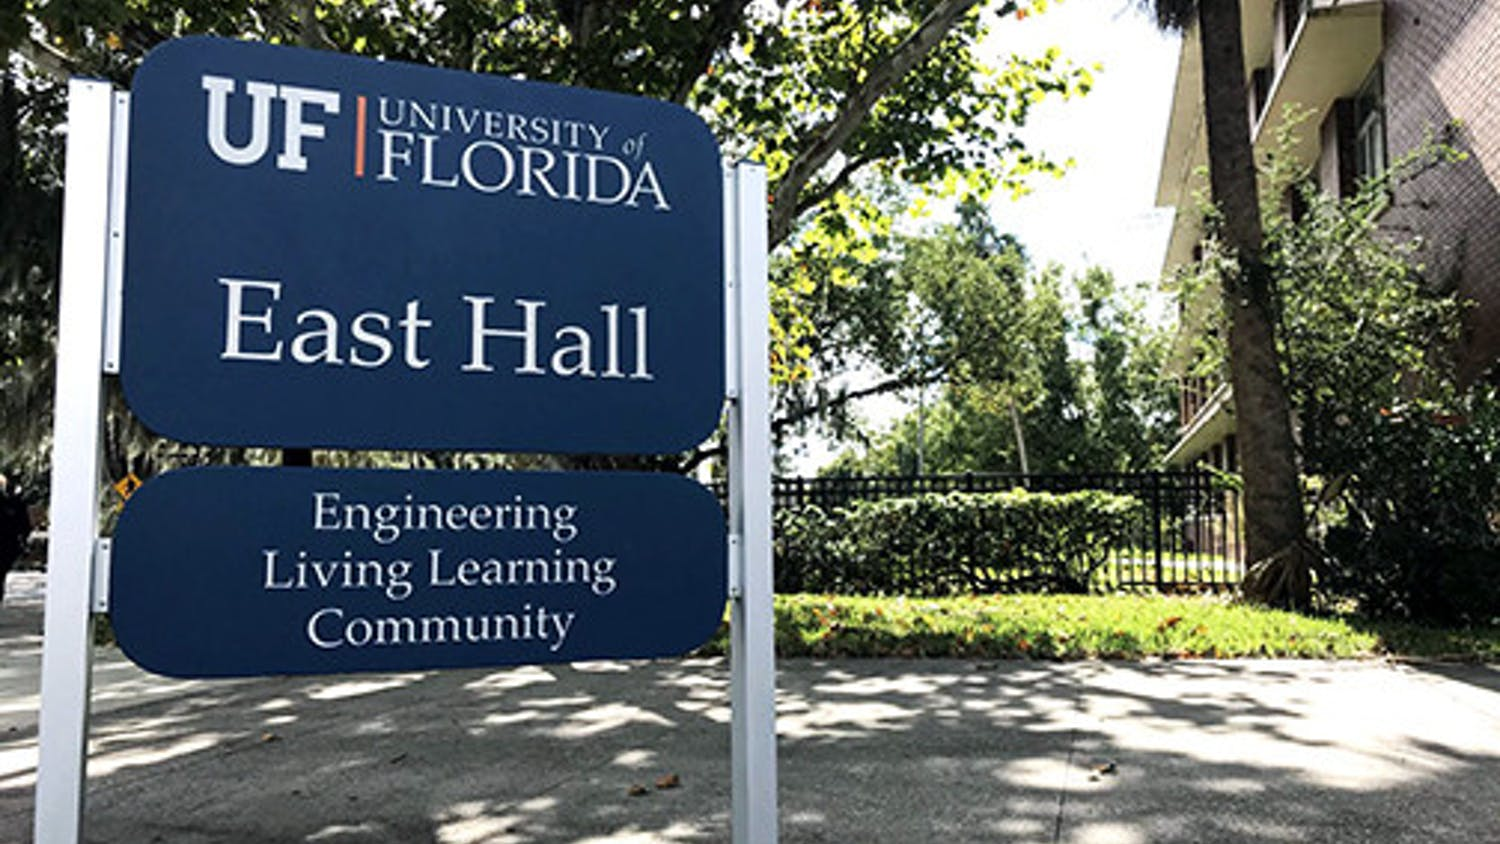 East Hall residents were relocated last semester to make more quarantine rooms for Spring. Now the rooms remain untouched with only three weeks of the semester left.